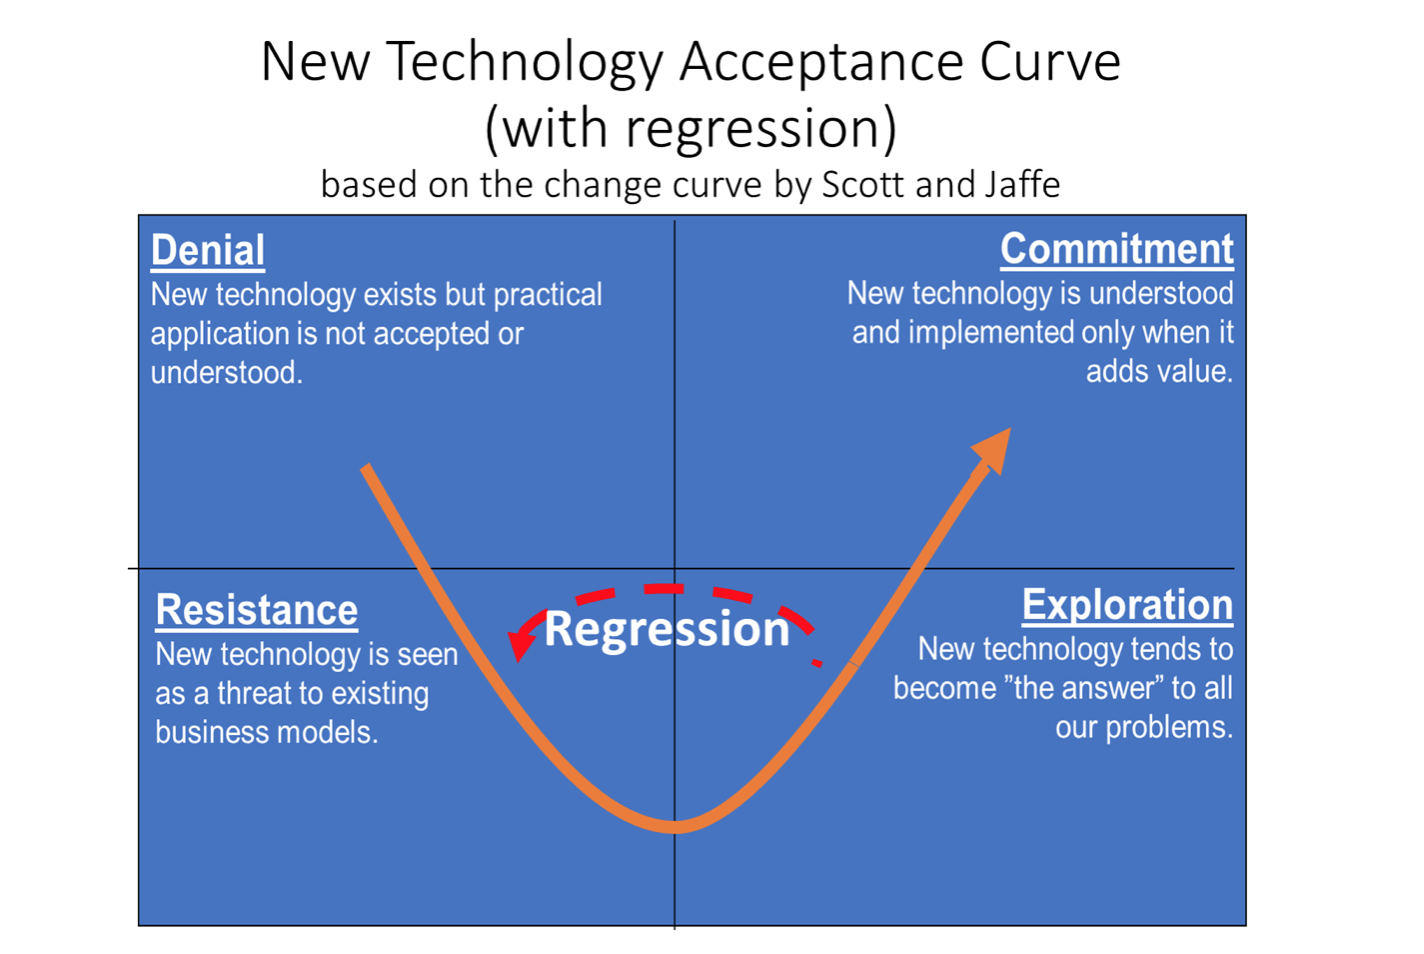 New technology acceptance curve with regression